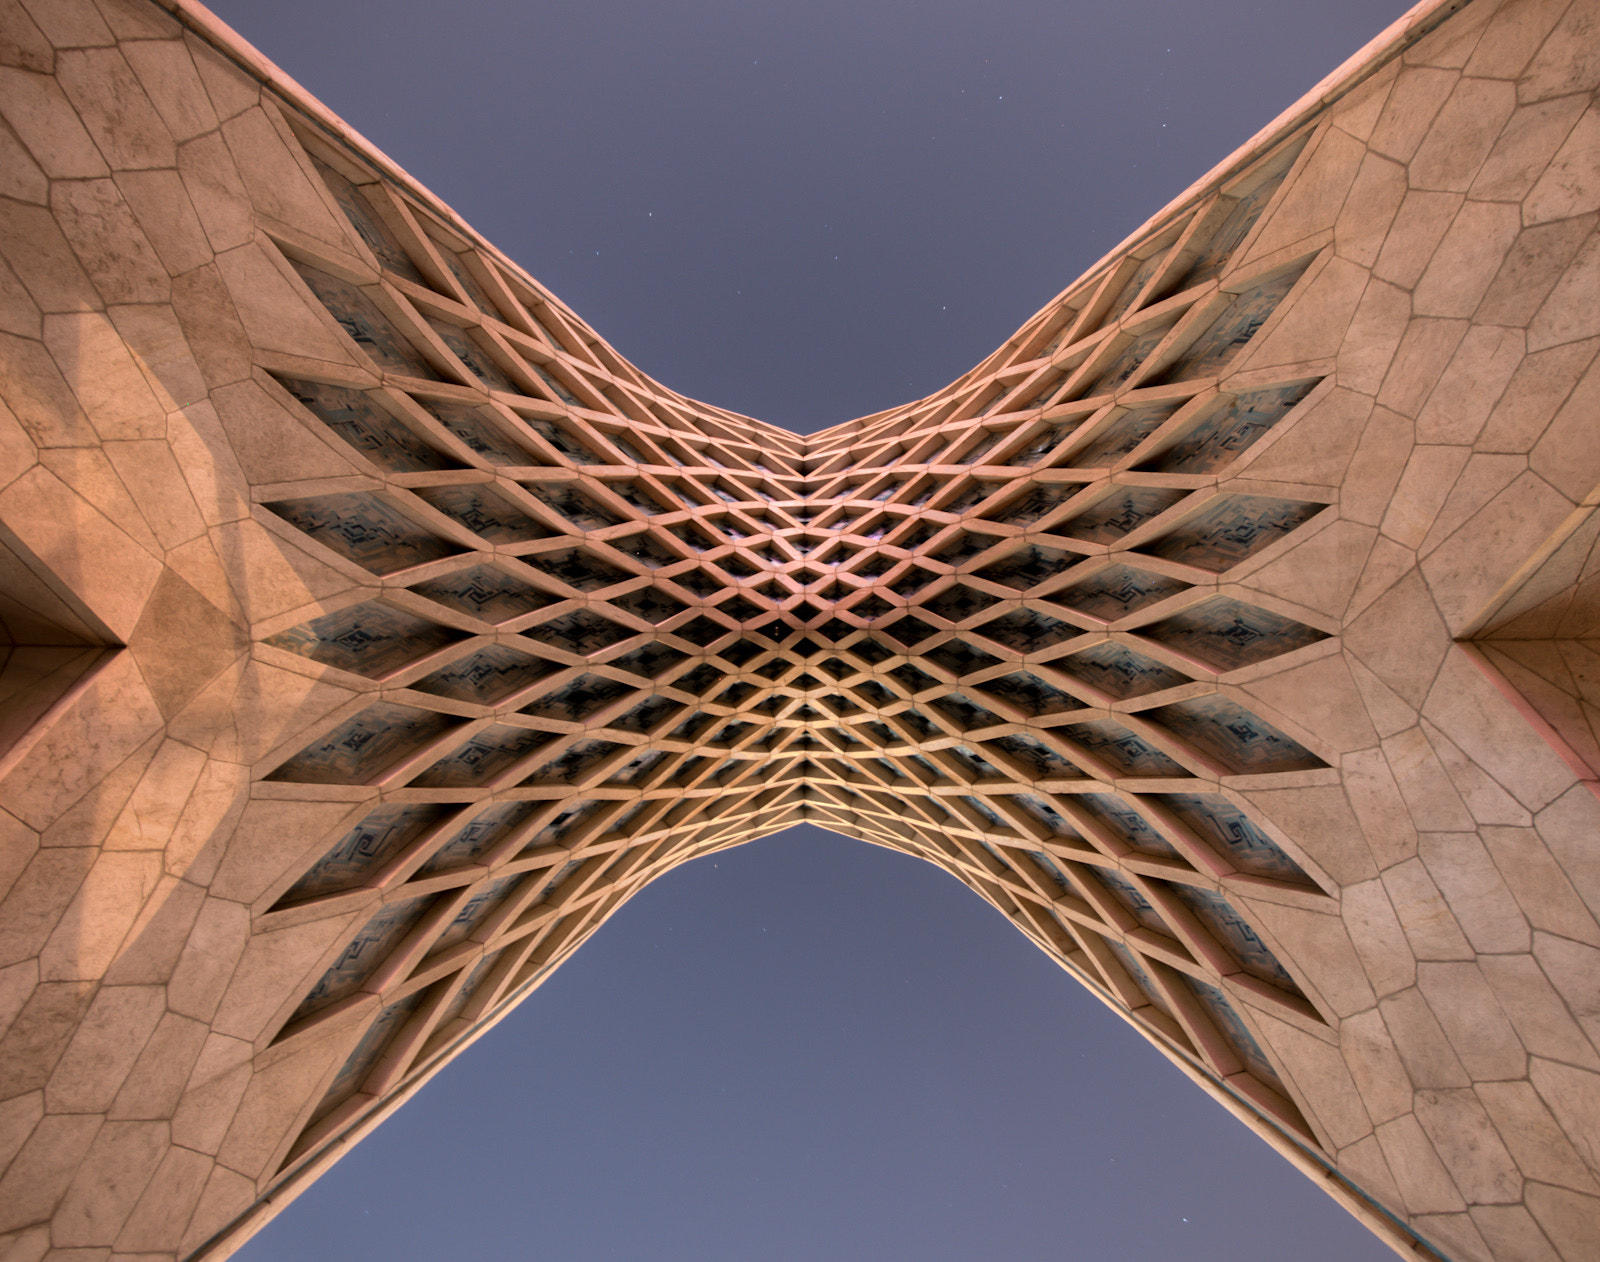 Photograph Upshot of Azadi Tower by Geoffrey McGill on 500px